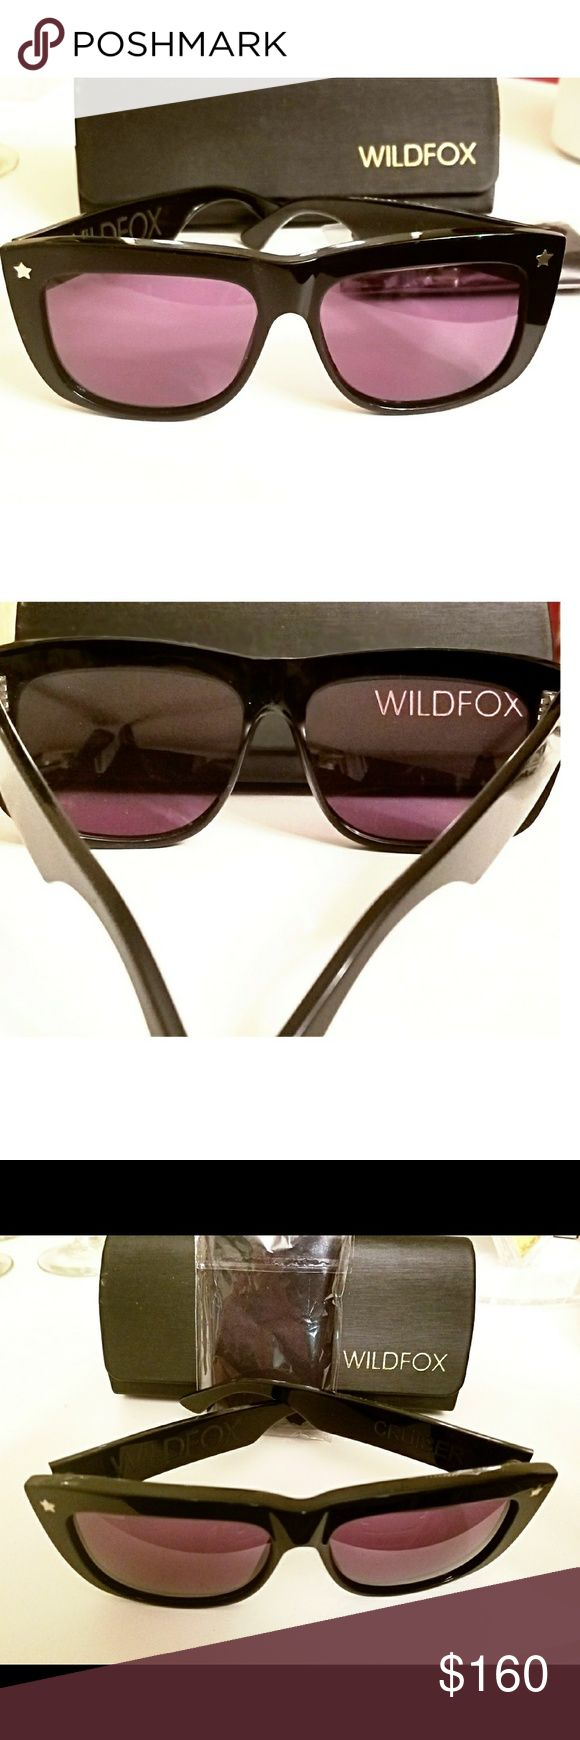 Wildfox Unisex Sunglasses NWT NWT Wildfox Sunnies with purplish gradient comes with original box and cleaning cloth still in plastic!  These are Amazing, great for a tropical vacation or a day on the slopes! Wildfox Accessories Sunglasses